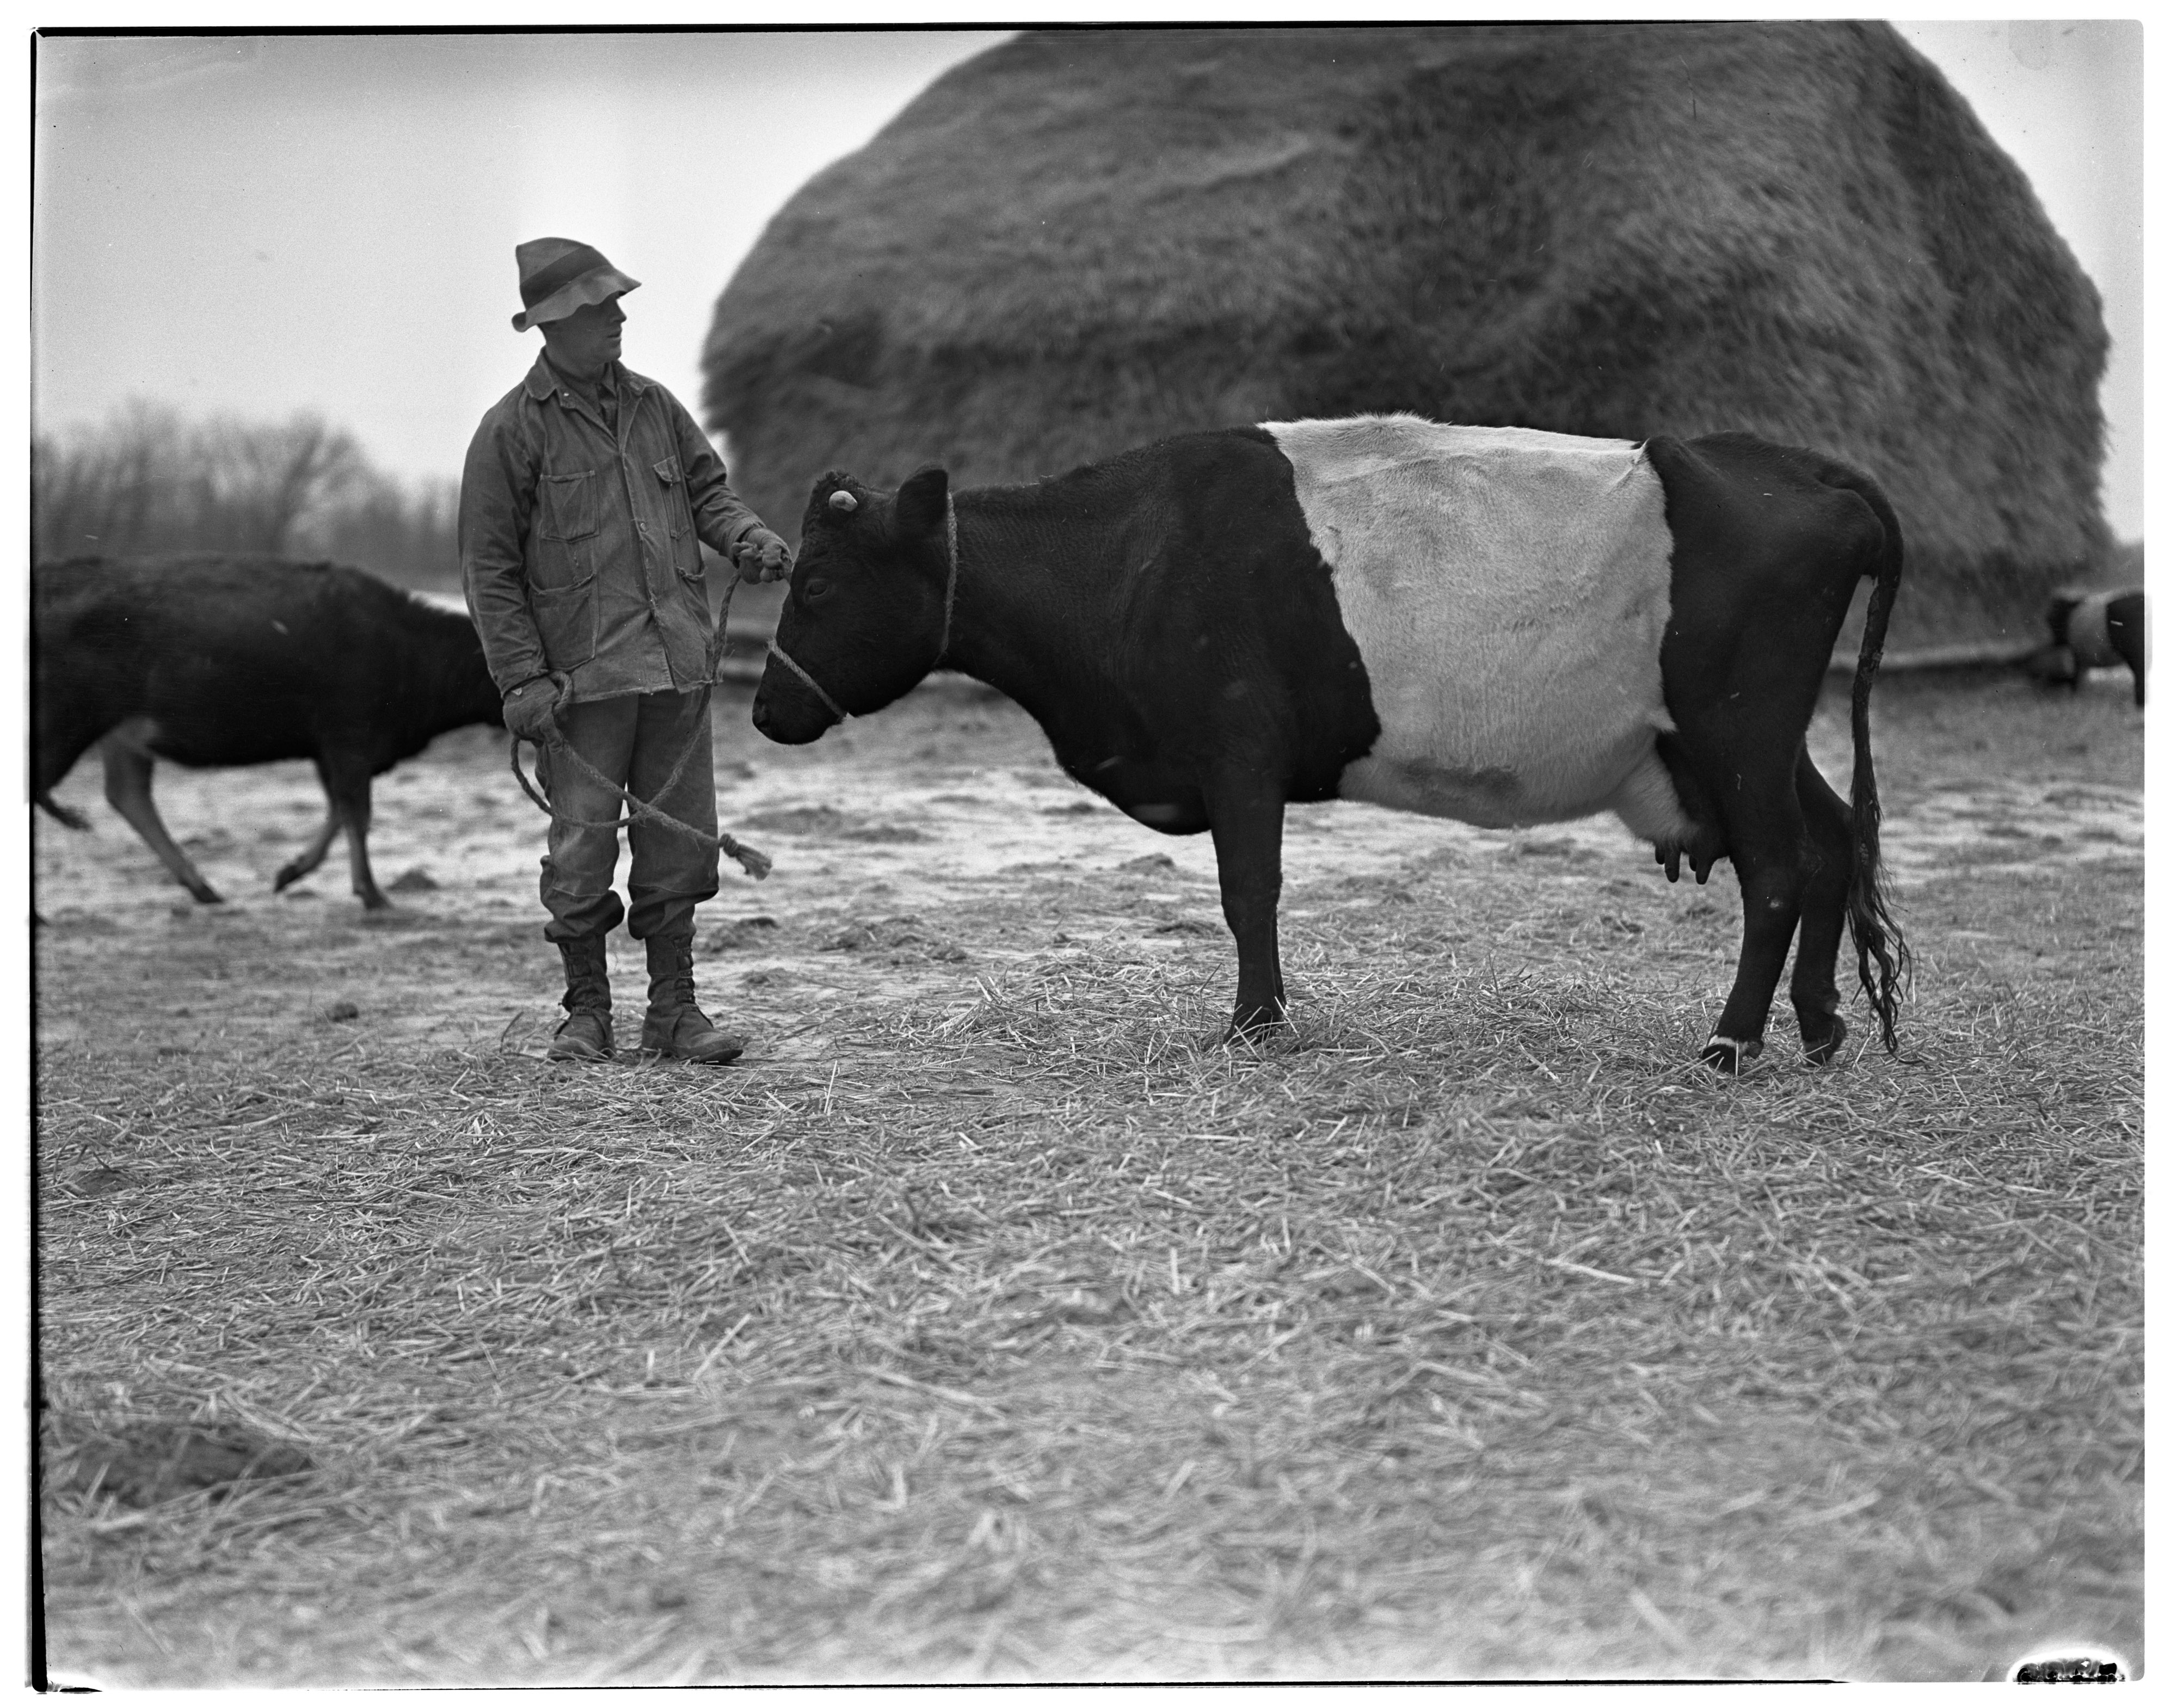 J.C. Bradbury's Dutch Belted Cattle, January 1938 image